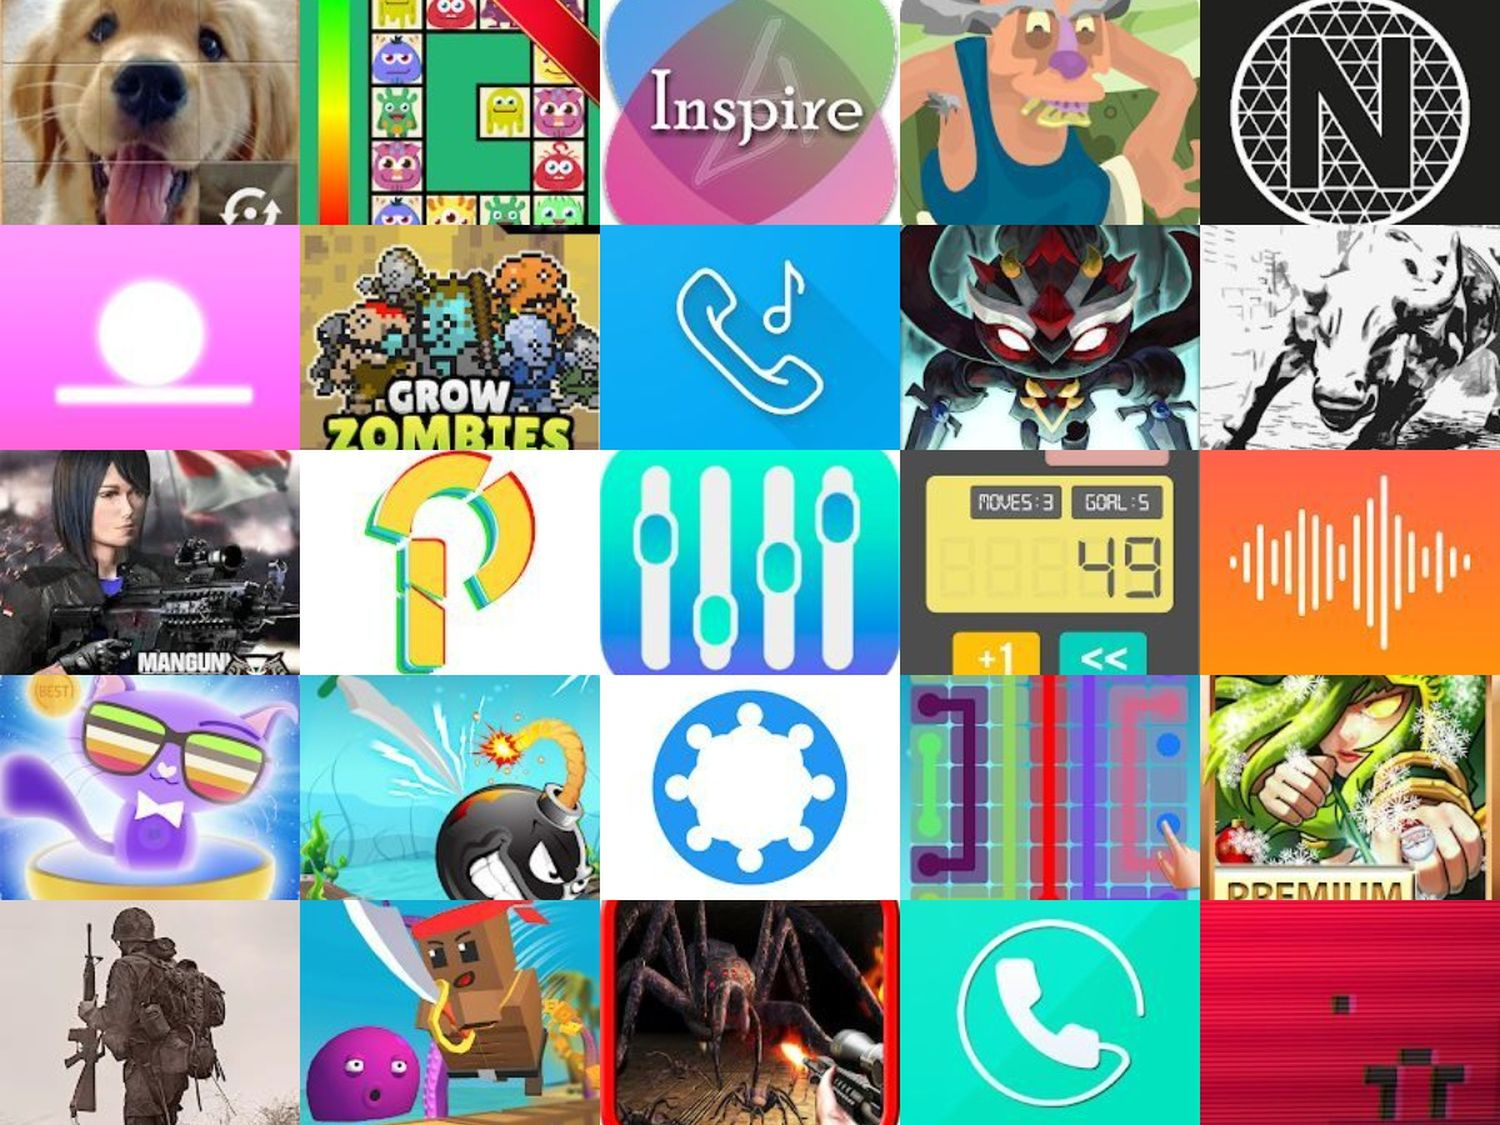 apps 05.10.2021